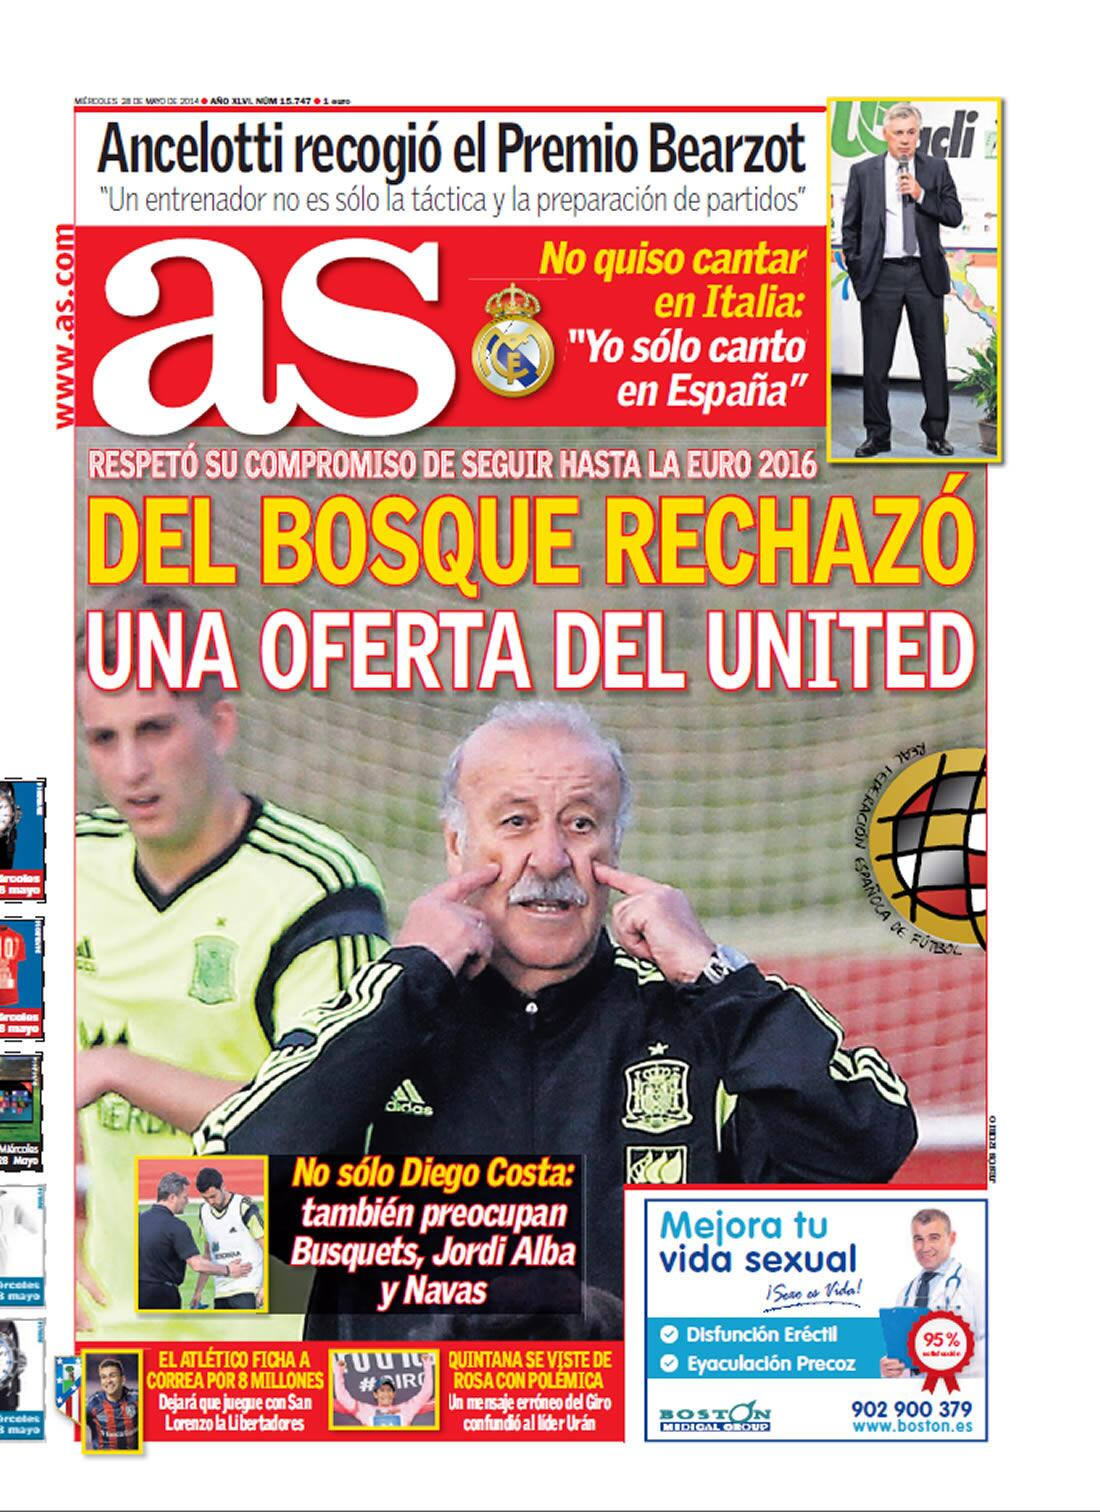 Spain coach Vicente Del Bosque rejected mega offer to coach Manchester United [AS]